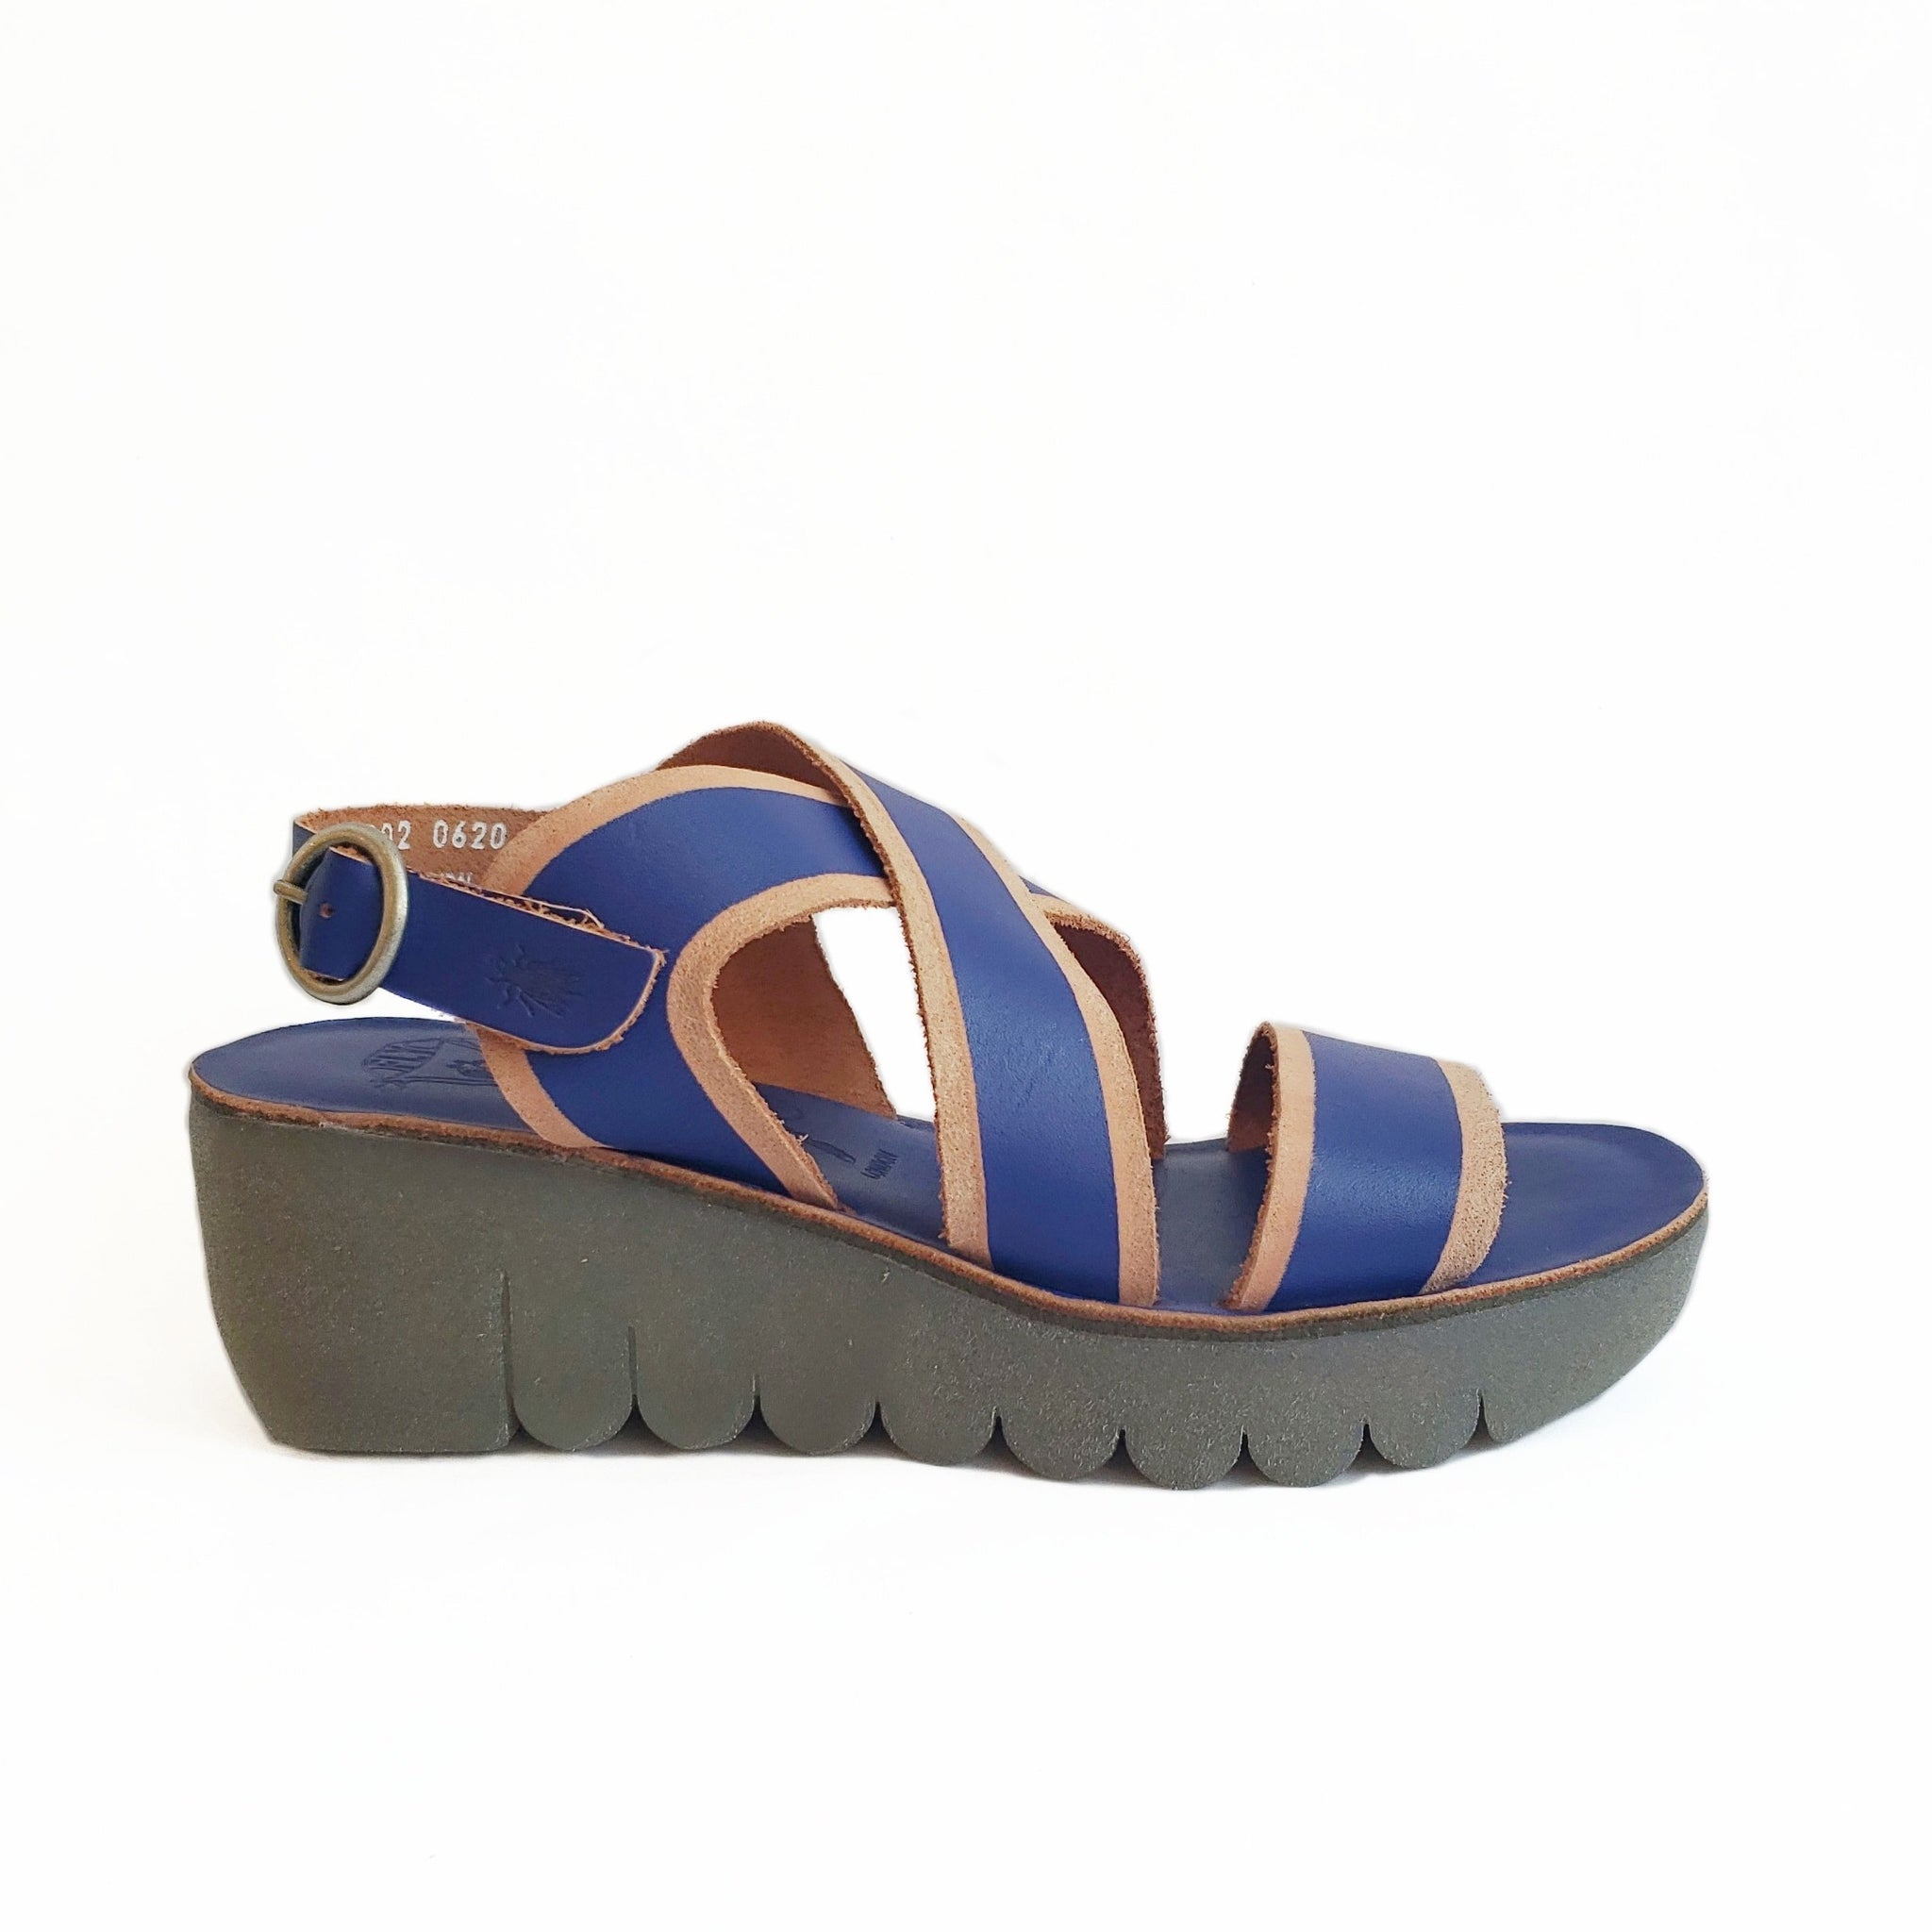 FLY LONDON - YAZE IN BLUE/BRANDY